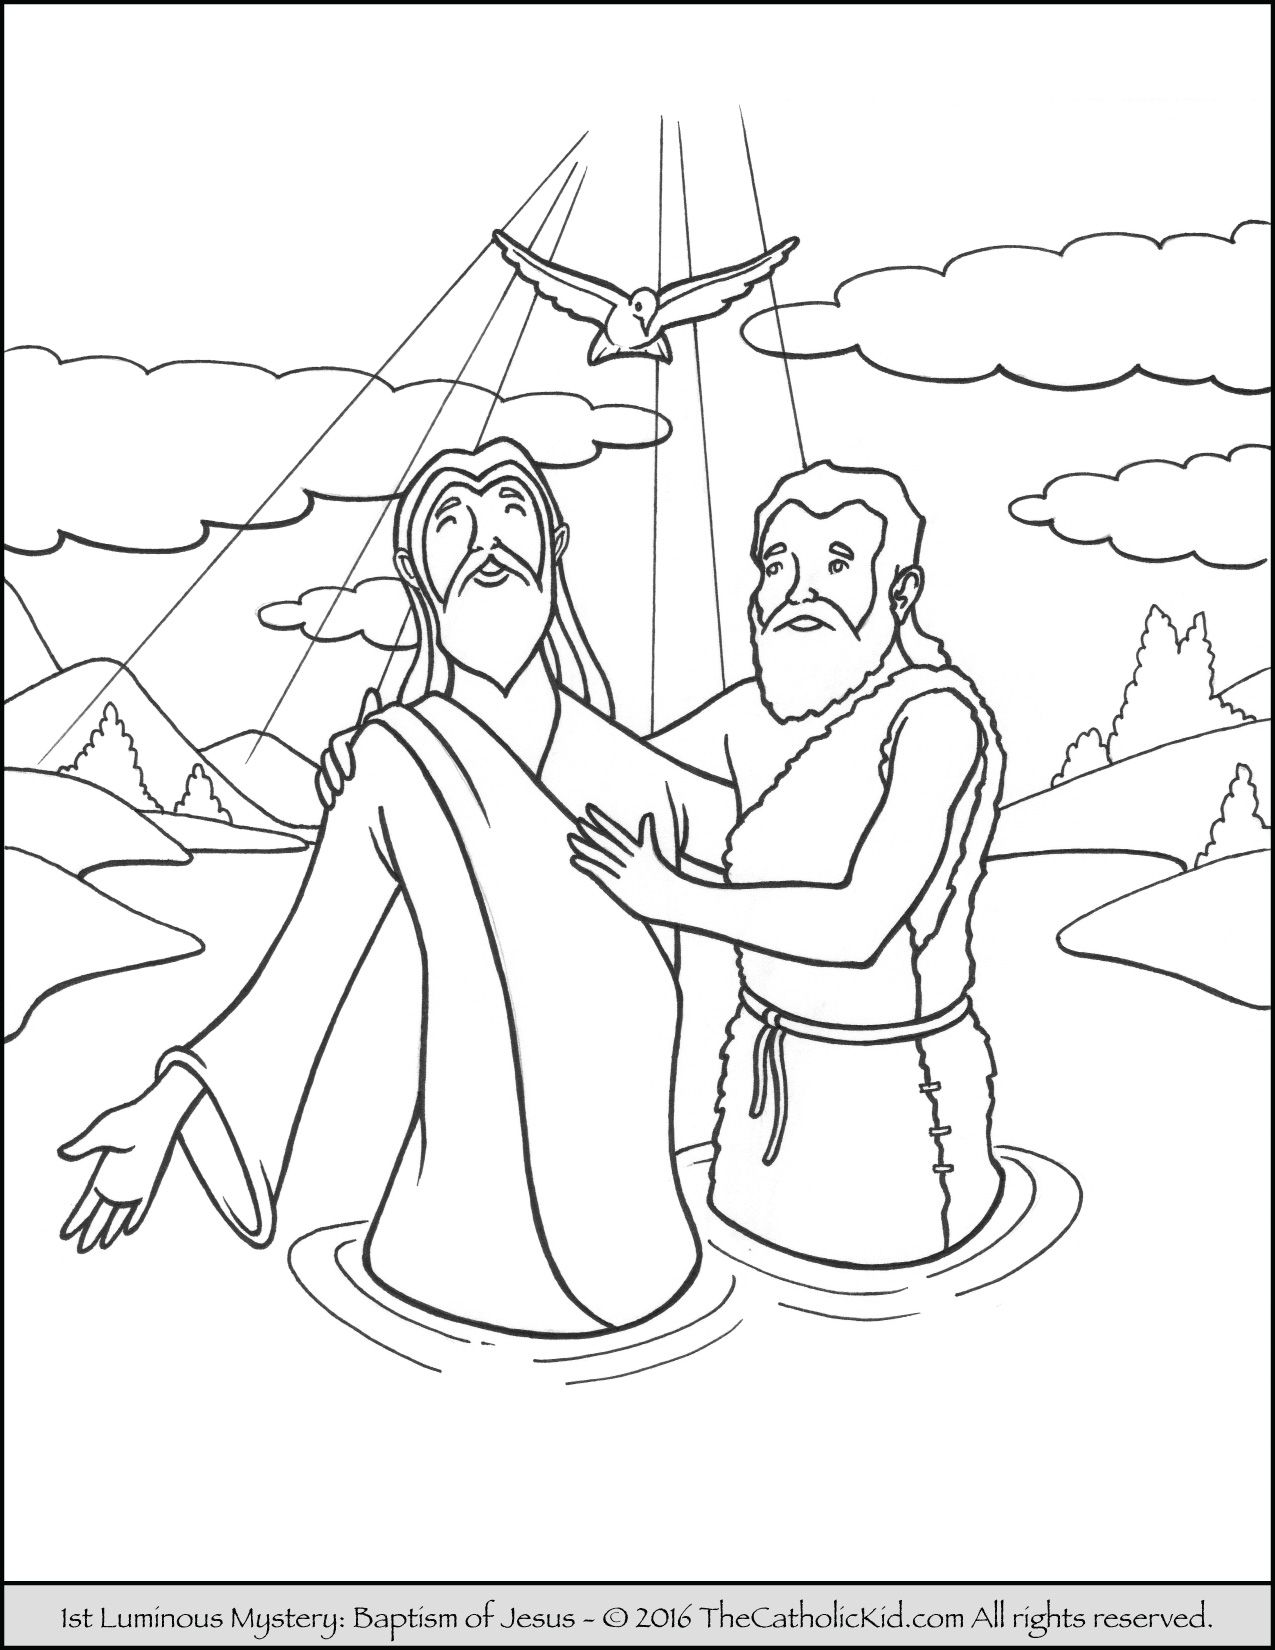 The 1st Luminous Mysteries Rosary Coloring Pages Baptism